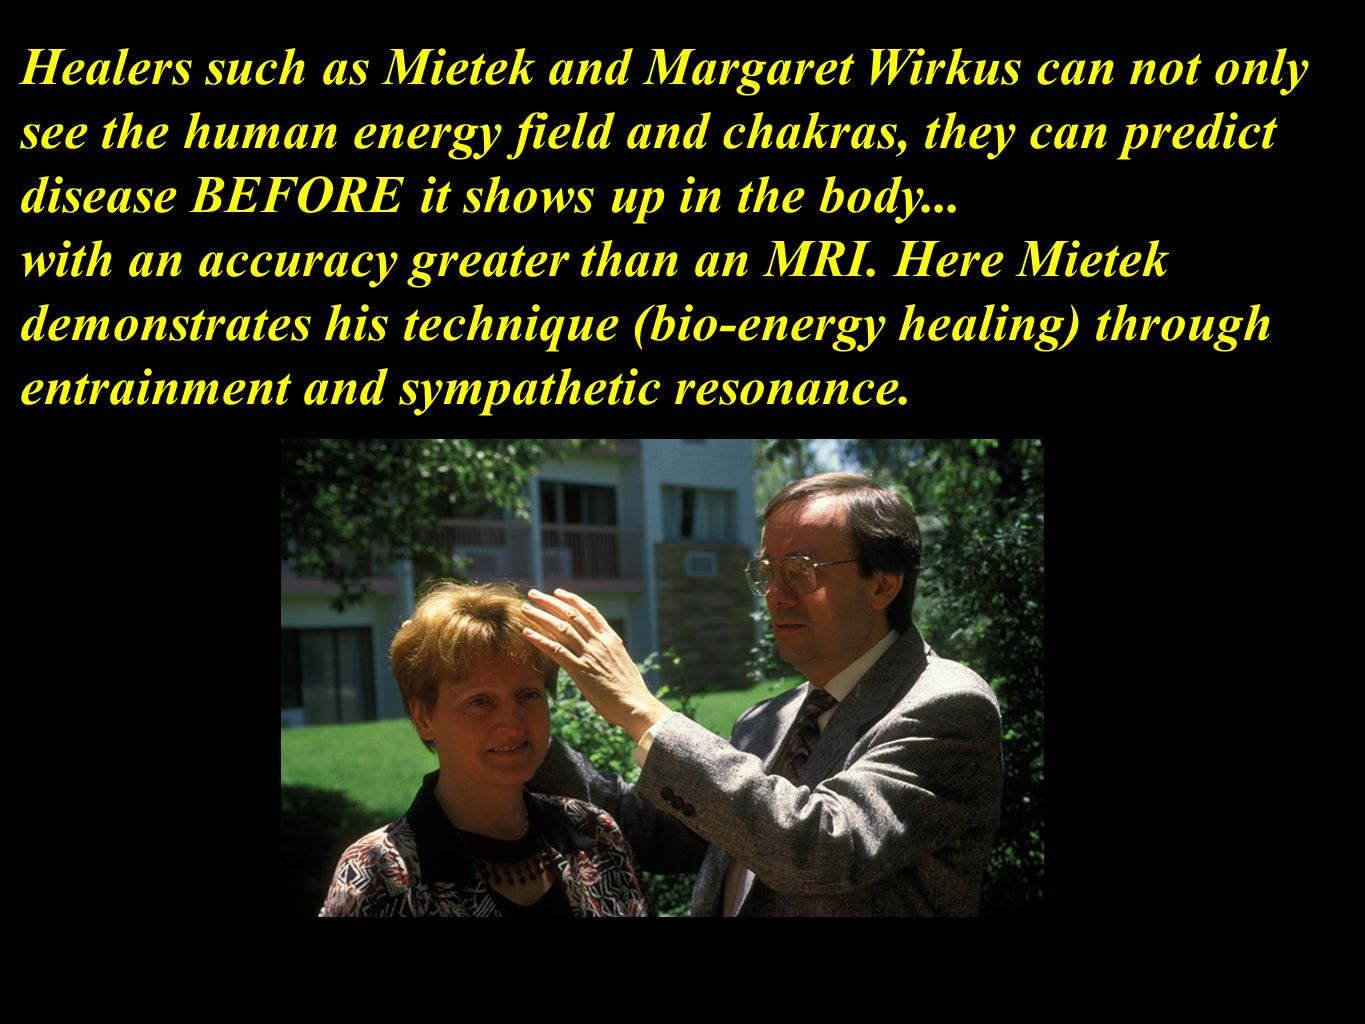 Healers such as Mietek and Margaret Wirkus can not only see the human energy field and chakras, they can predict disease BEFORE it shows up in the body...